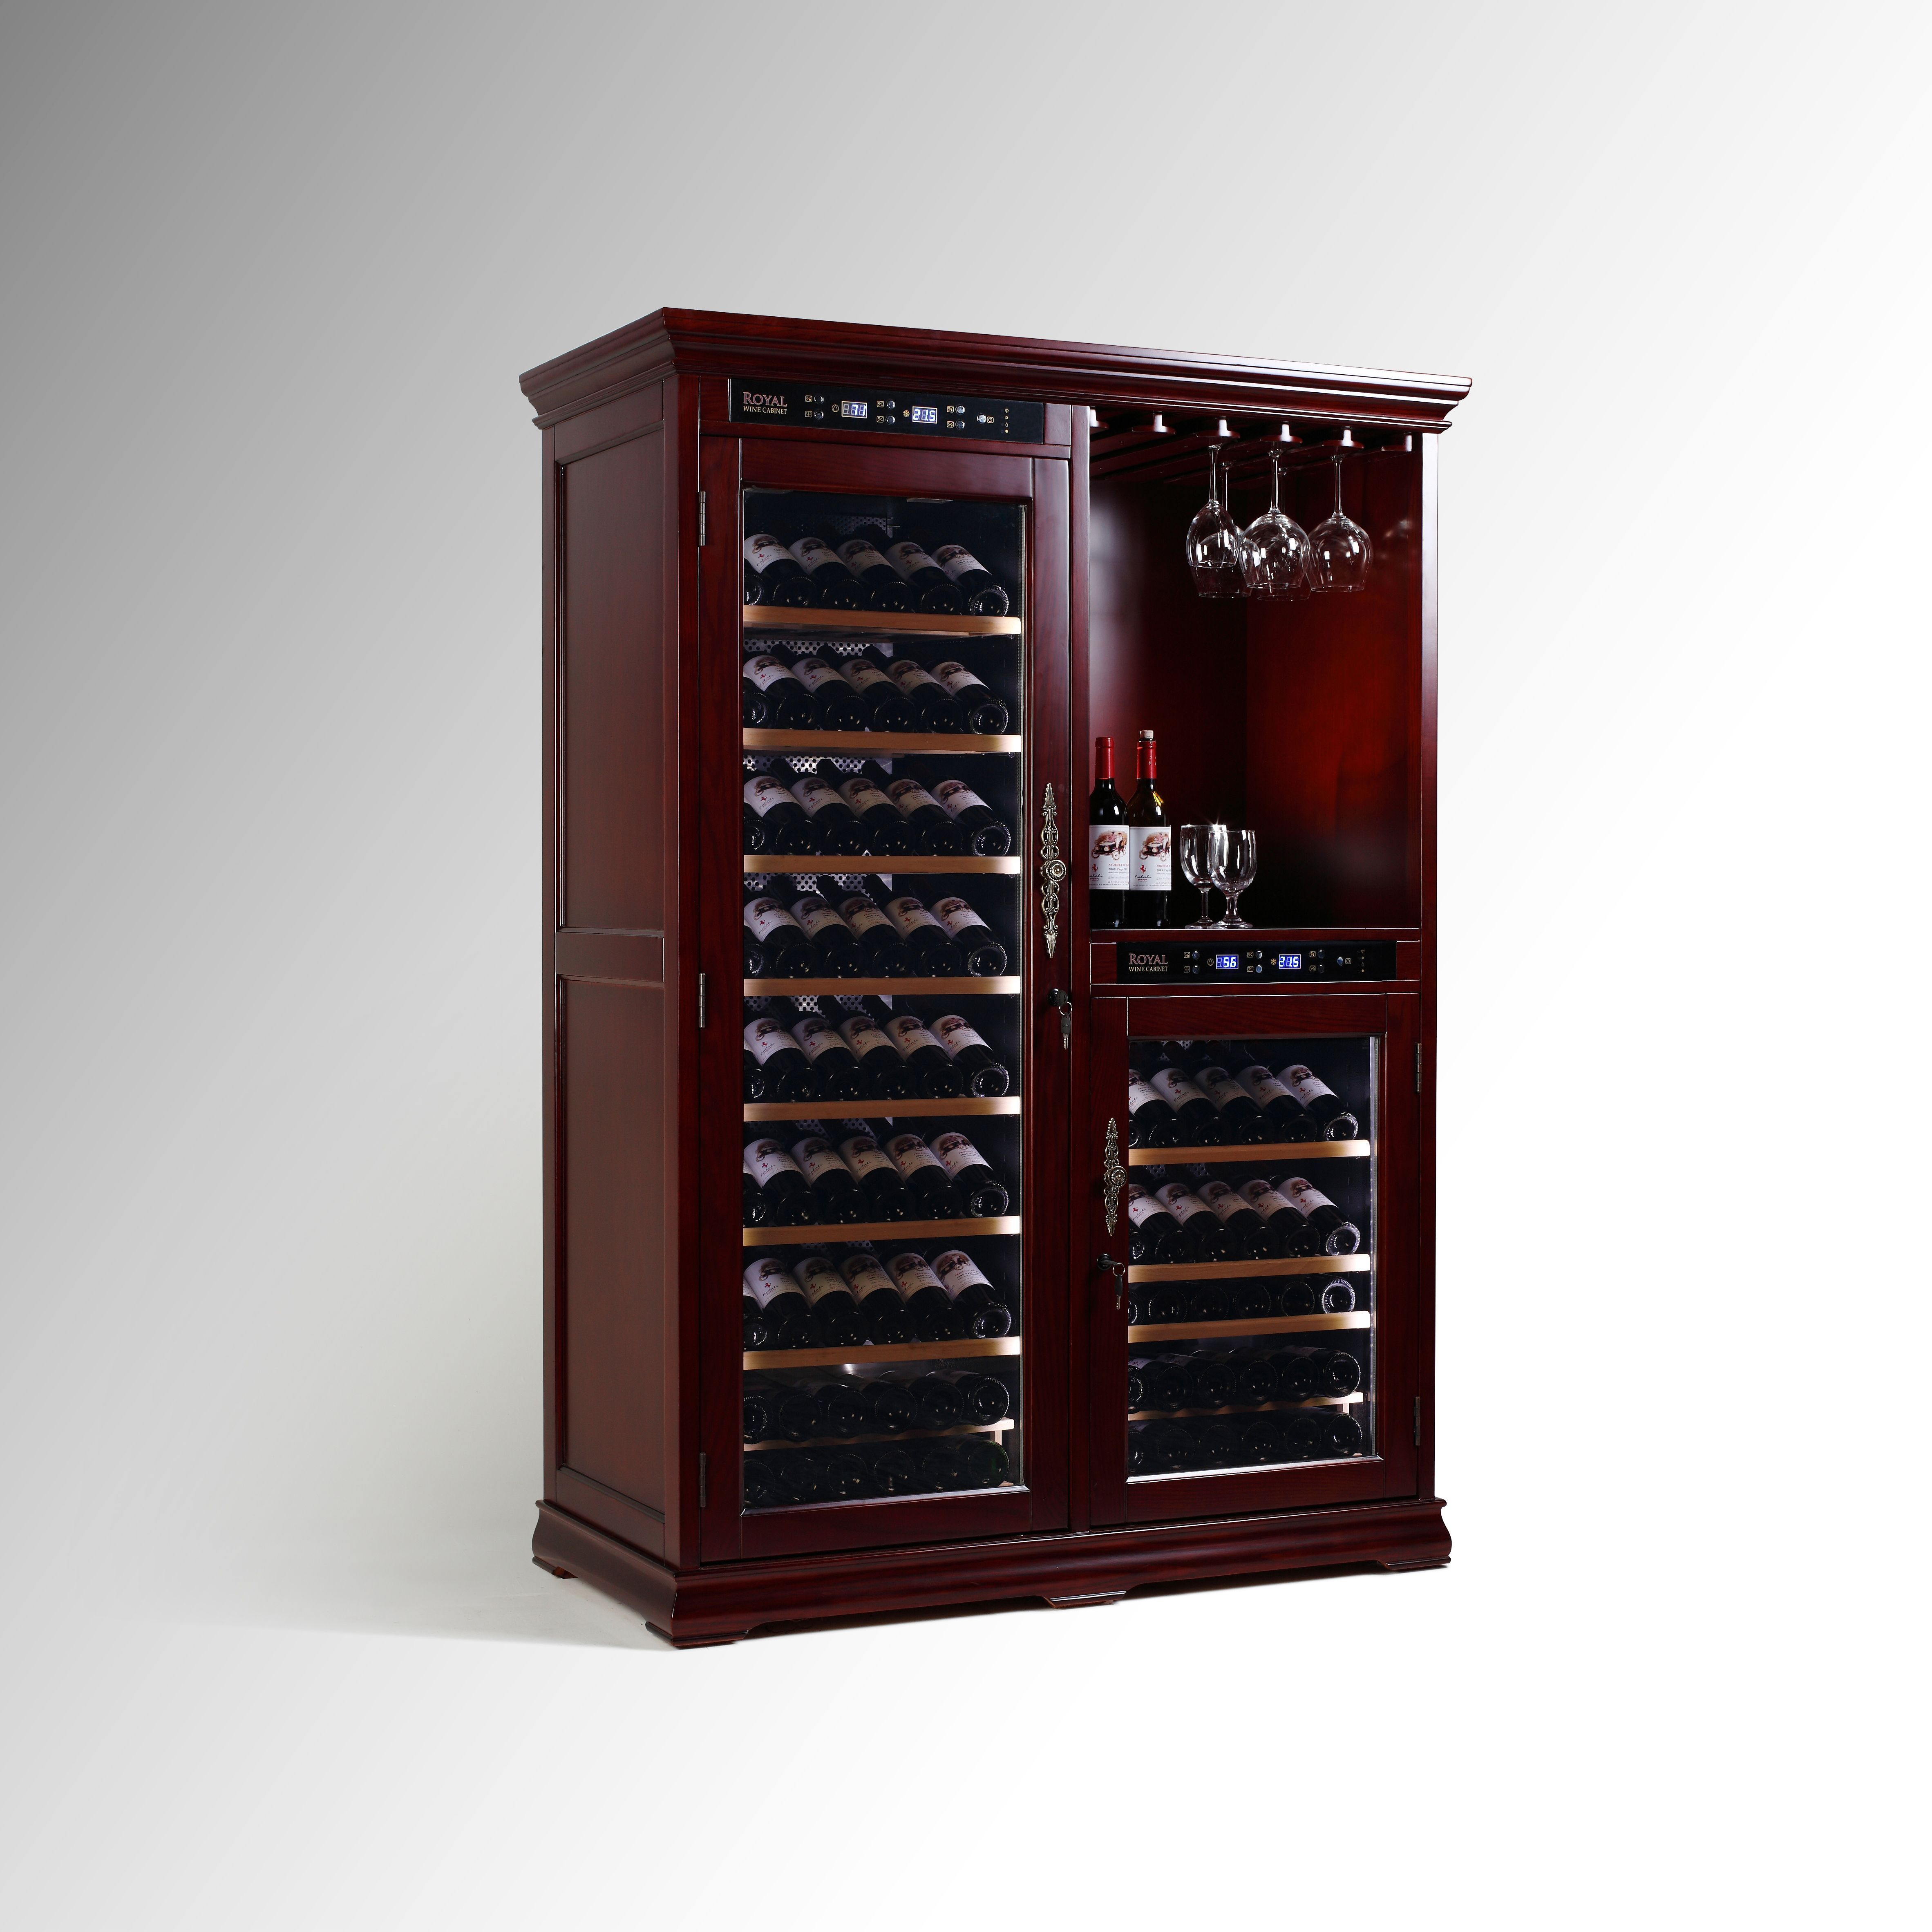 VinBro Wine Cellar bo Furniture 232 Bottle Home Bar Decor 143 75